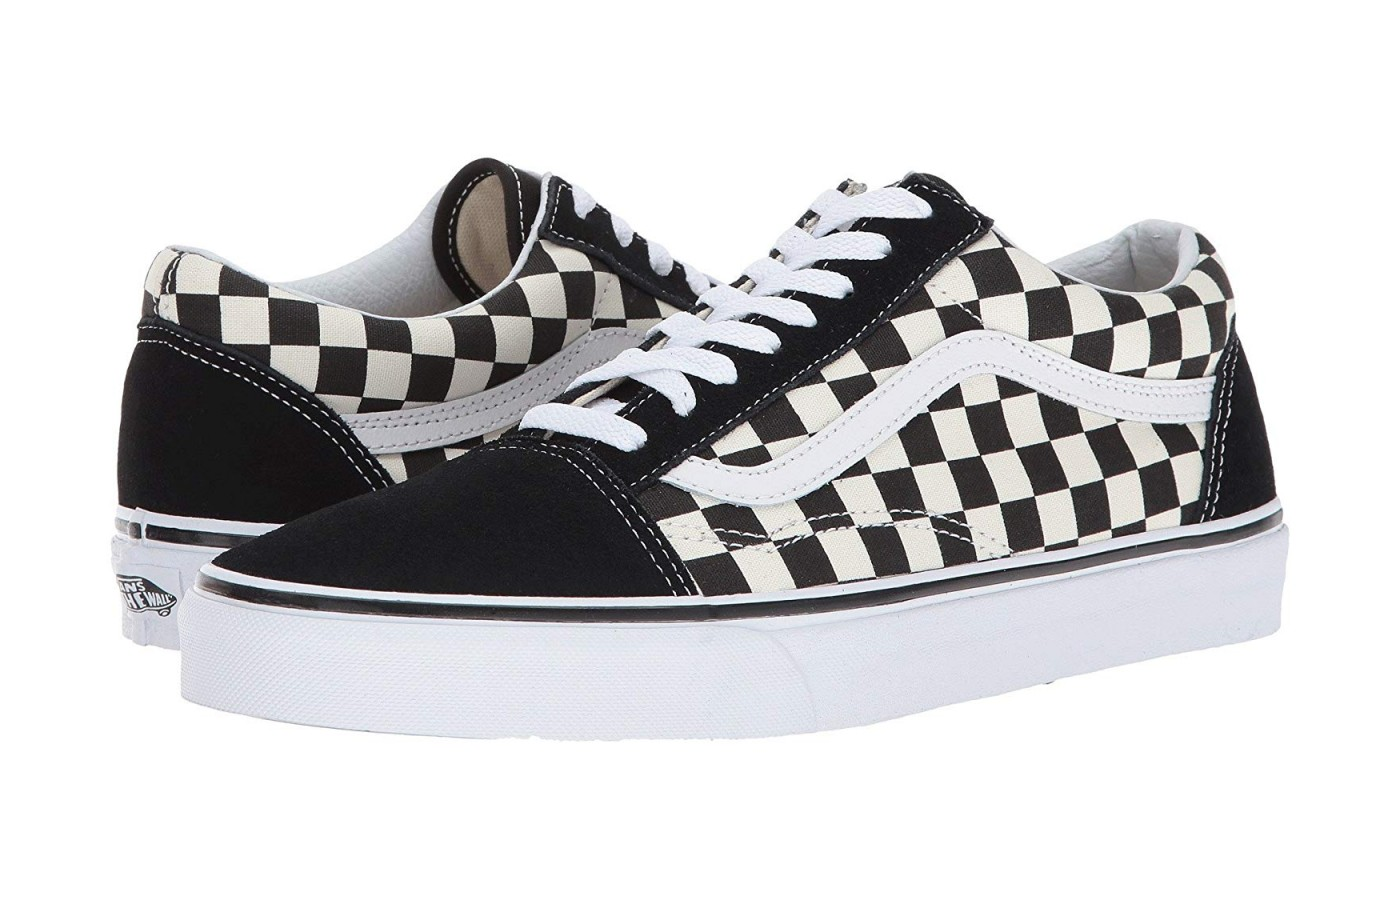 Vans Ward Low Perspective